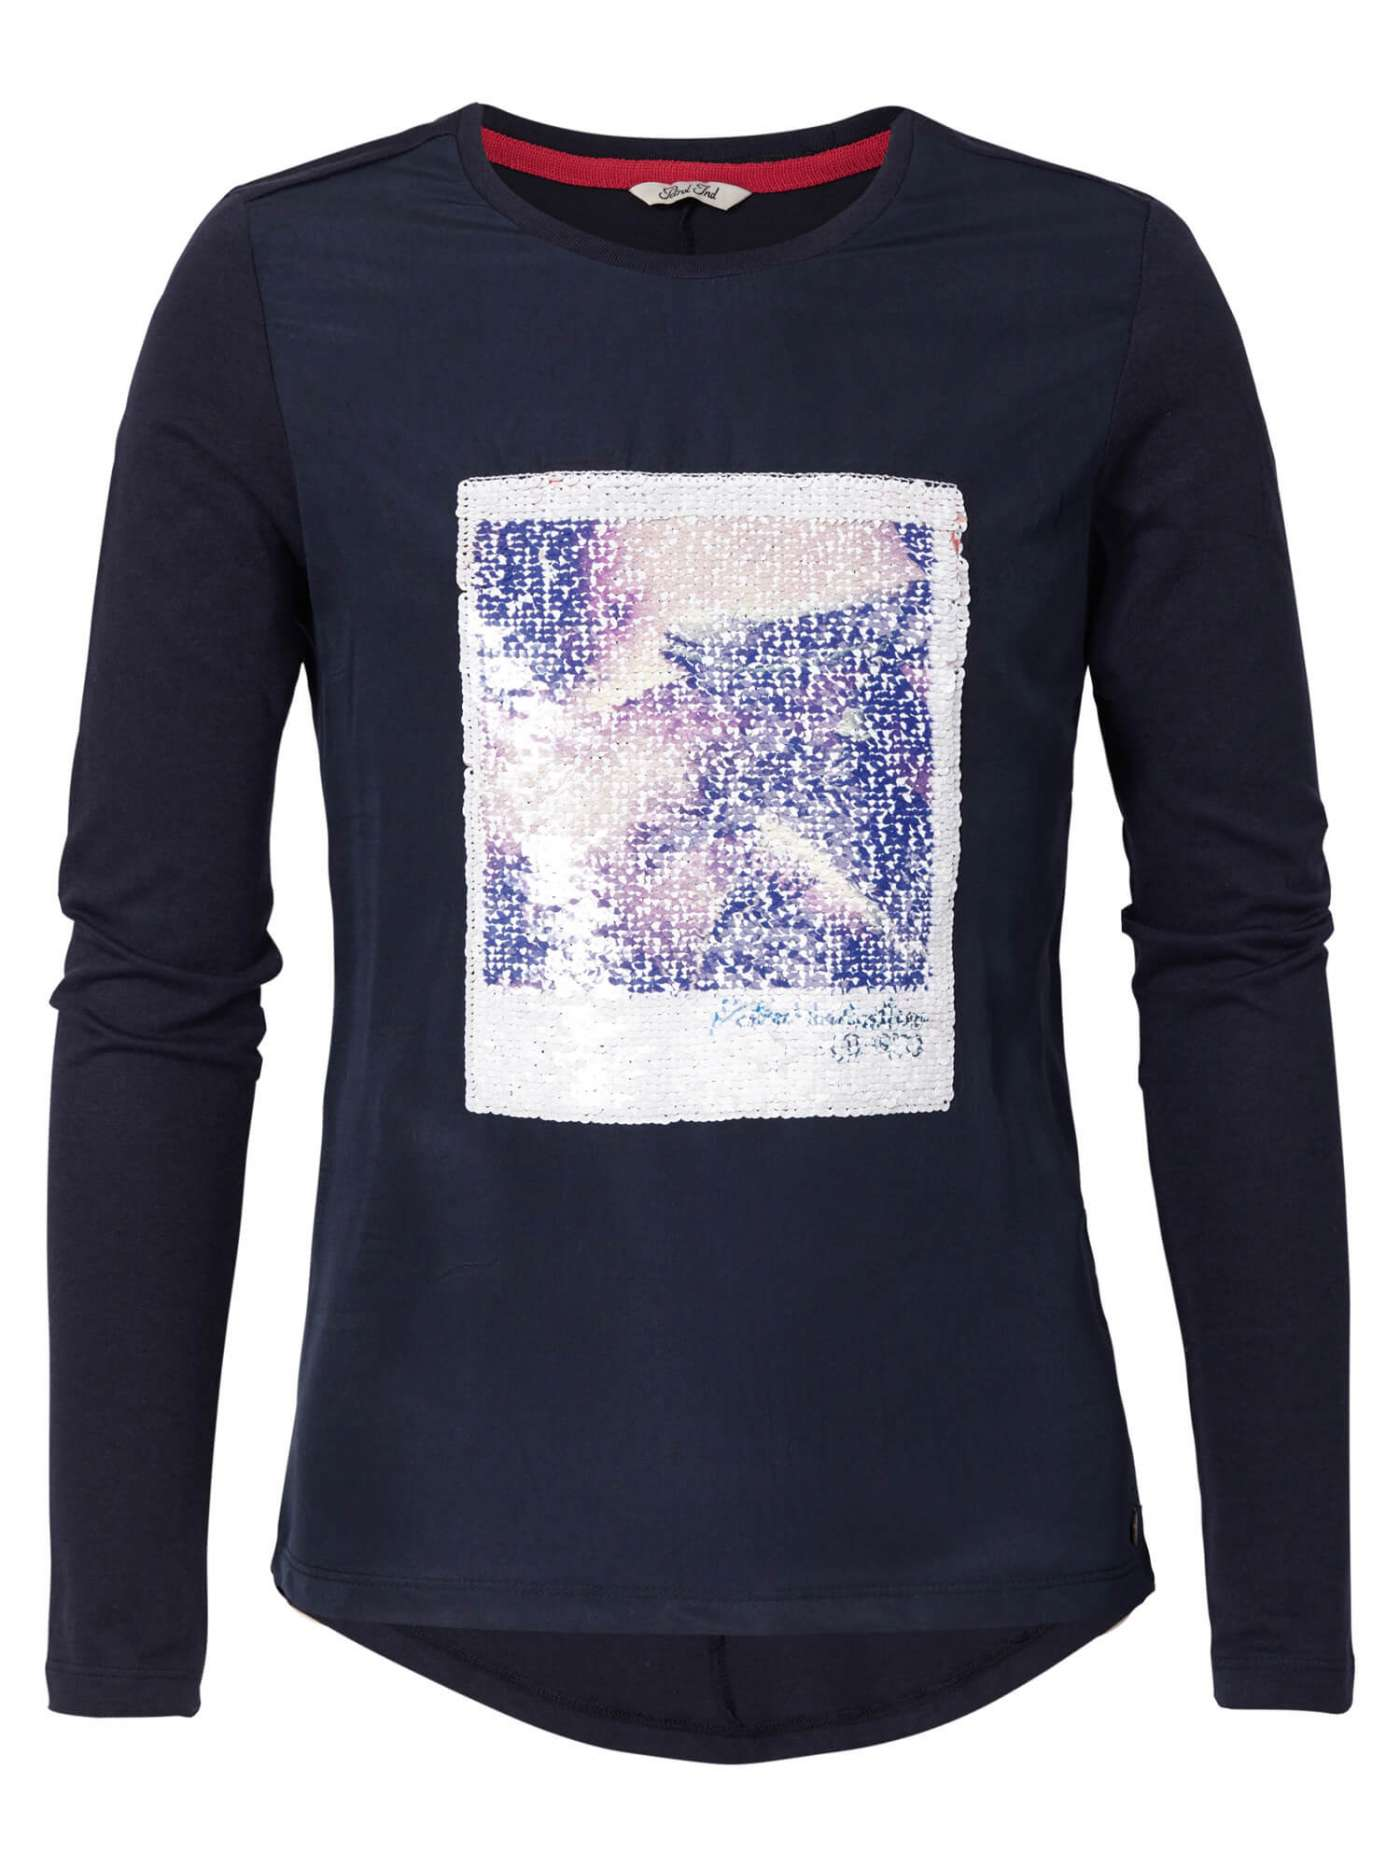 Long-Sleeve Sequined T-shirt